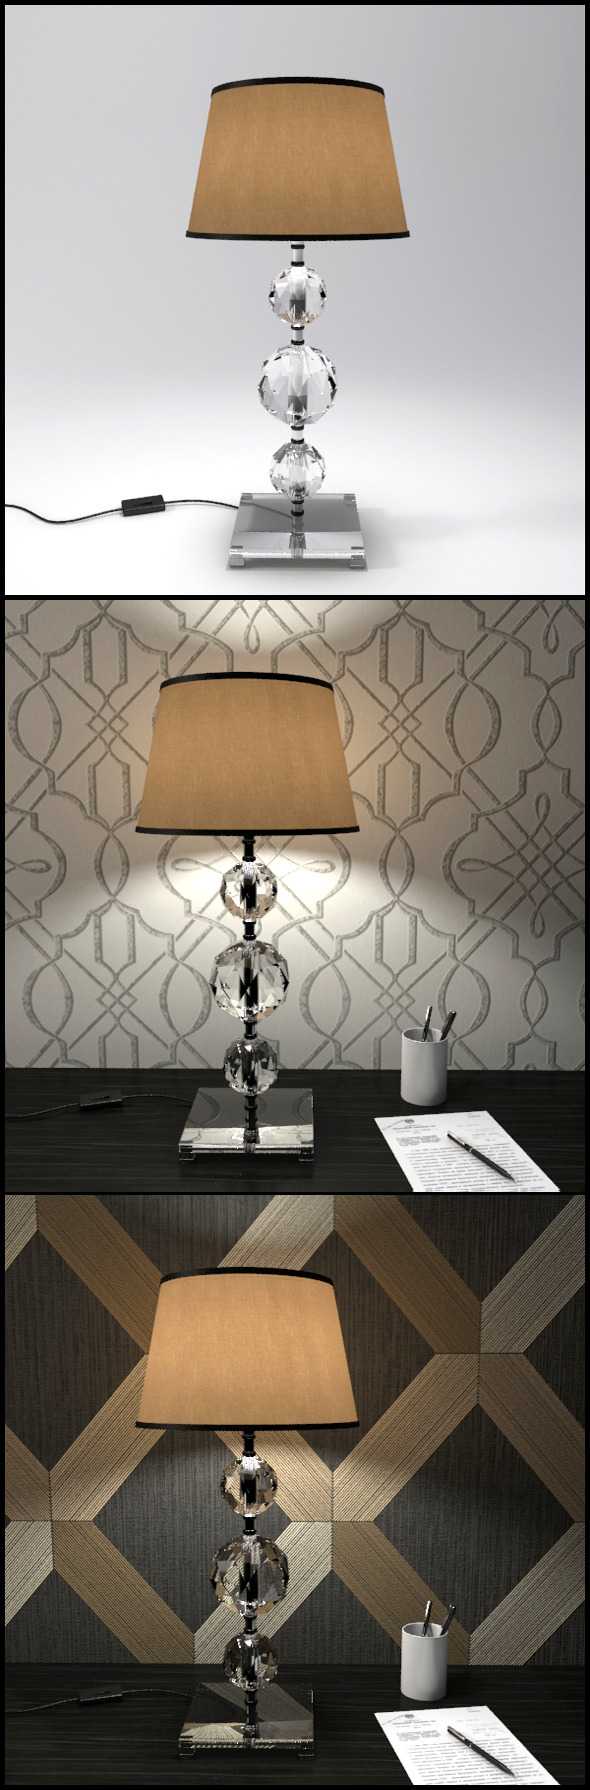 3DOcean Glass Geosphere Table Lamp #5 12368347